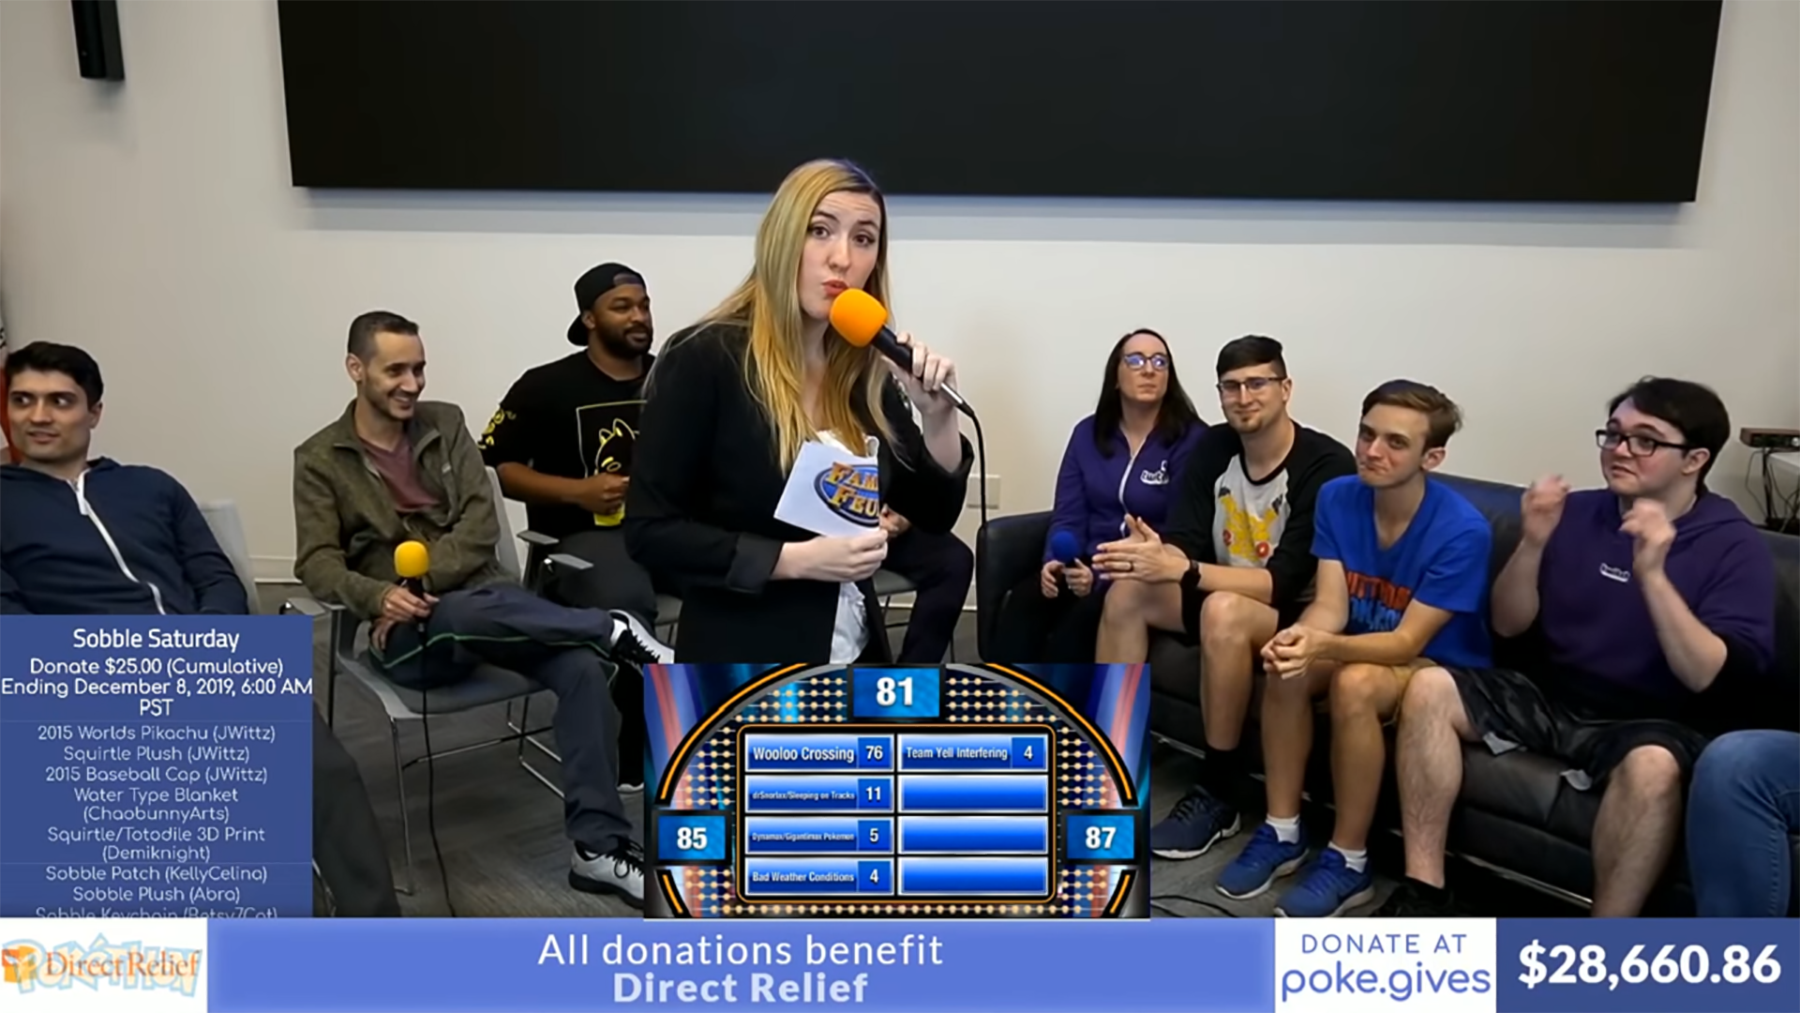 StephOfAnime (center) hosts a game show segment in the 2019 Pokéthon event that raised over $45,000 for Direct Relief.